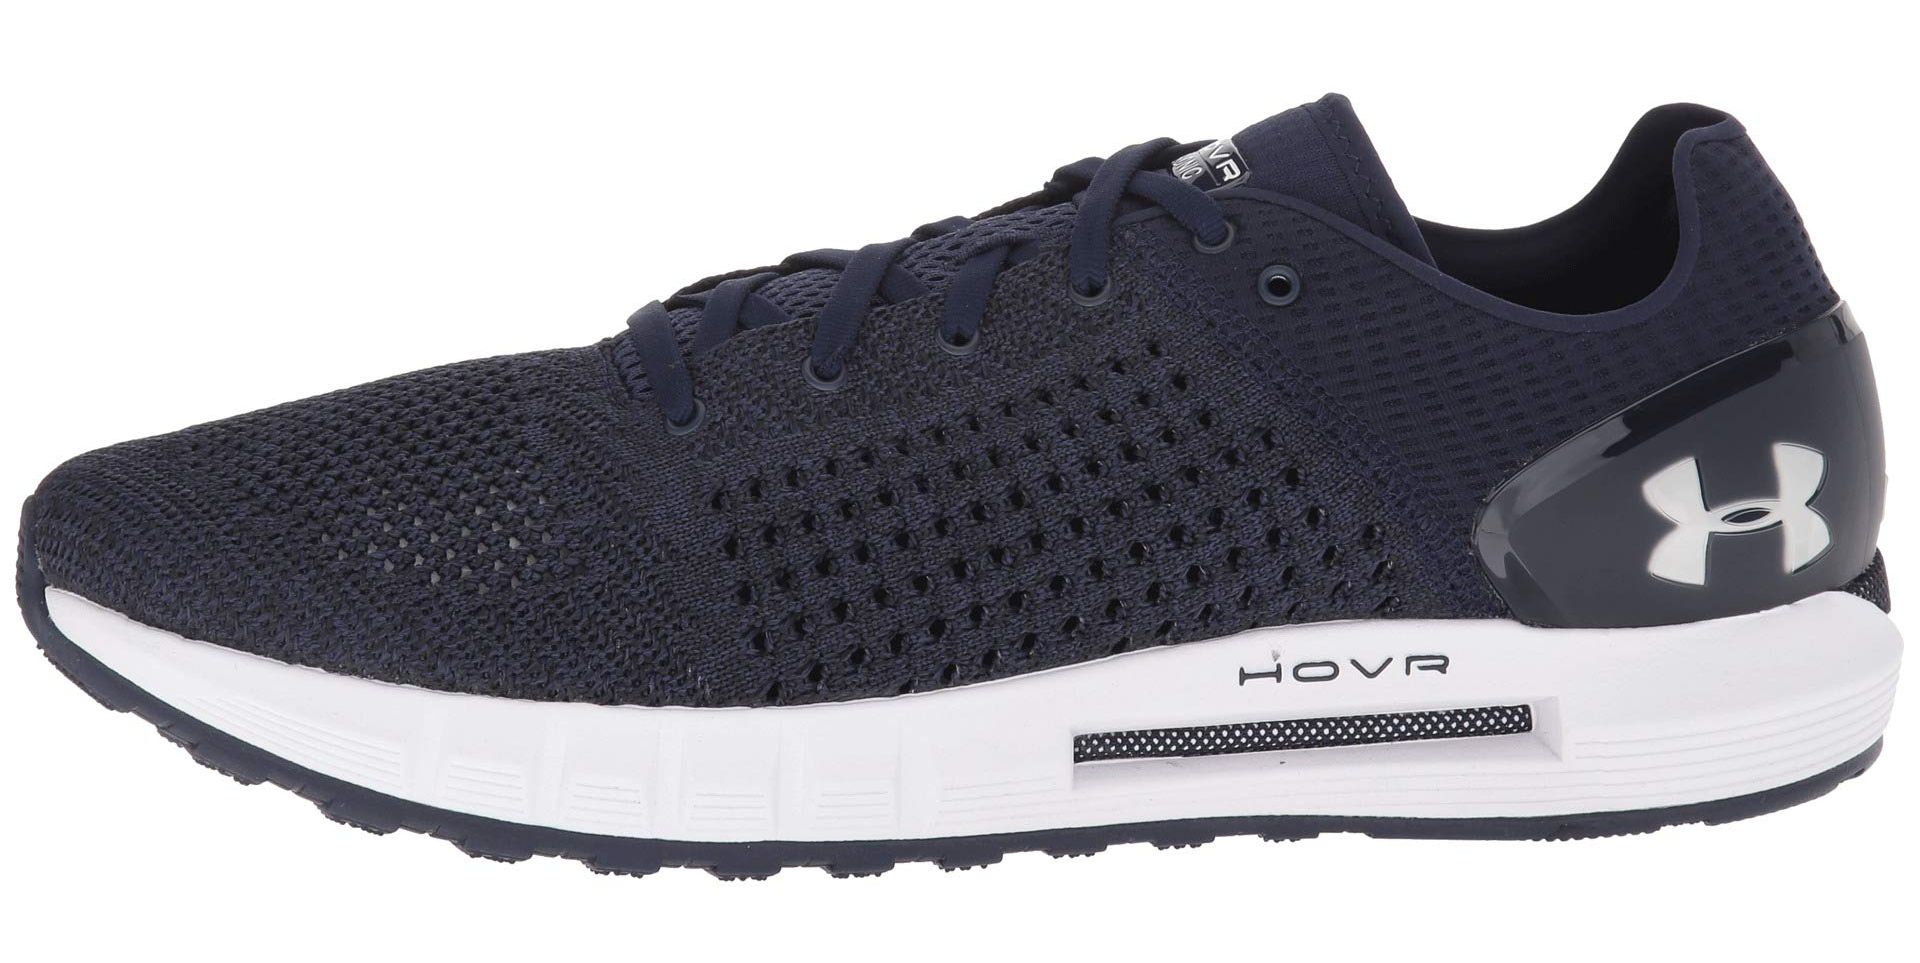 2cbca6ad19f Under Armour Running Shoes - 9 Best Shoes from Under Armour